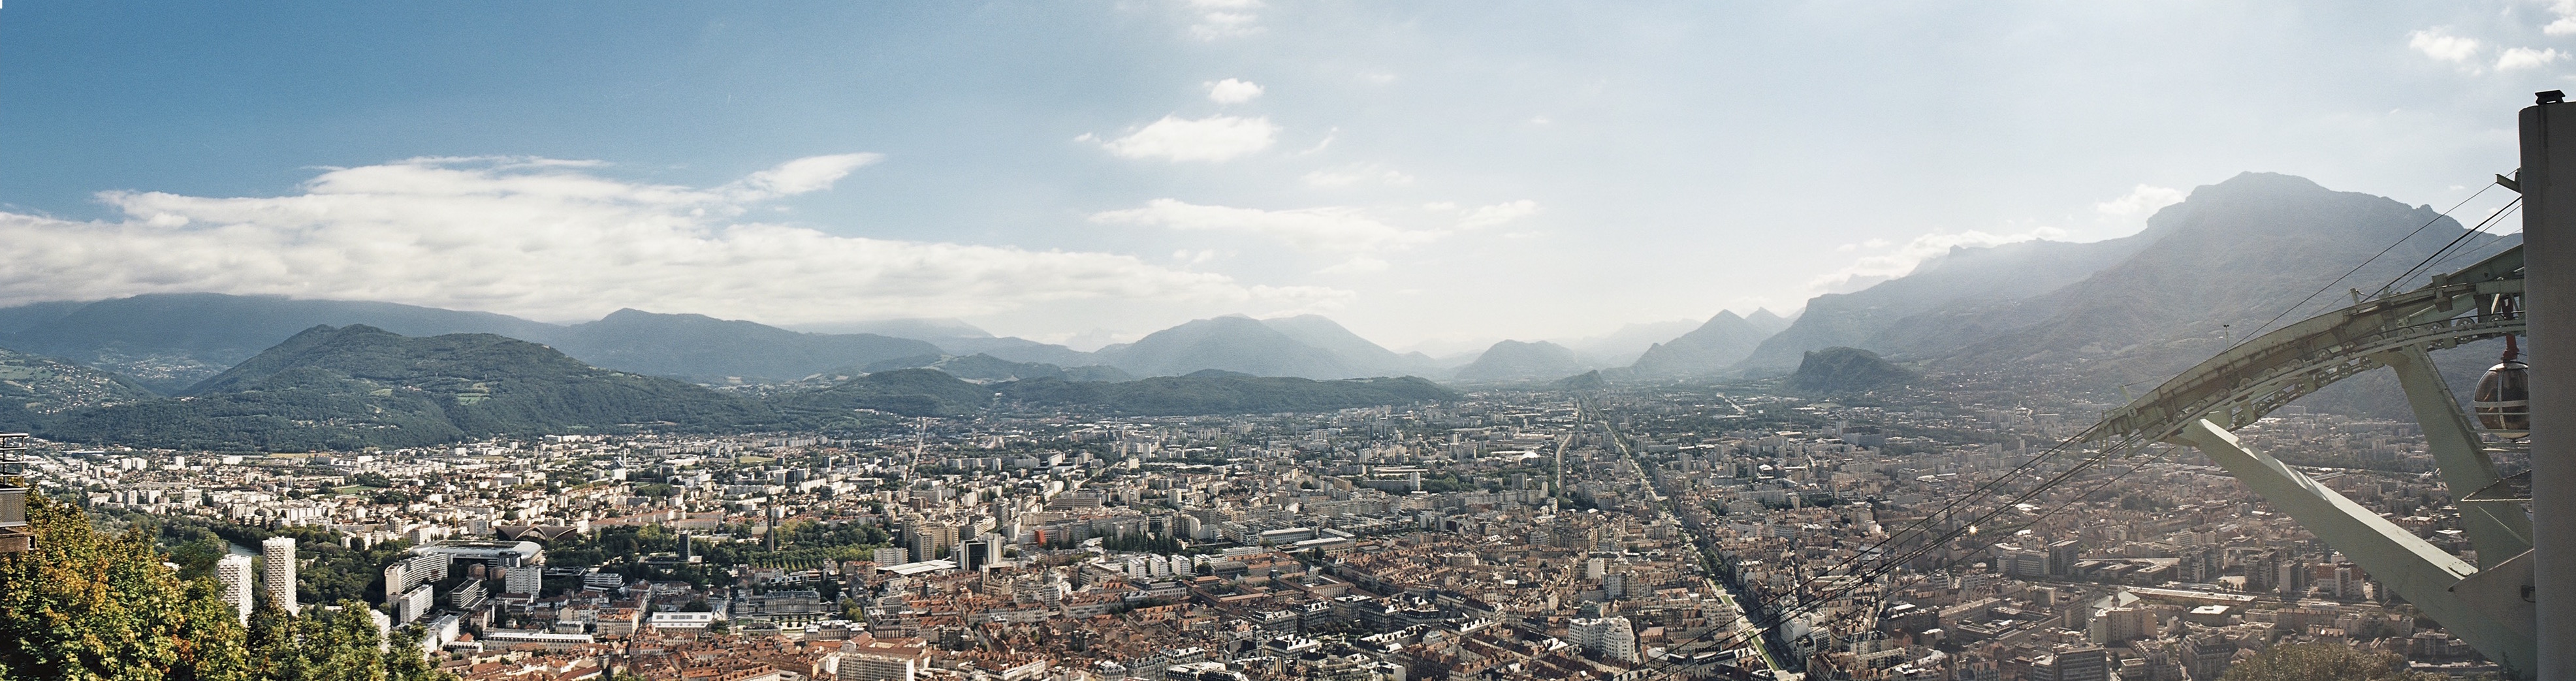 Grenoble, septembre 2015